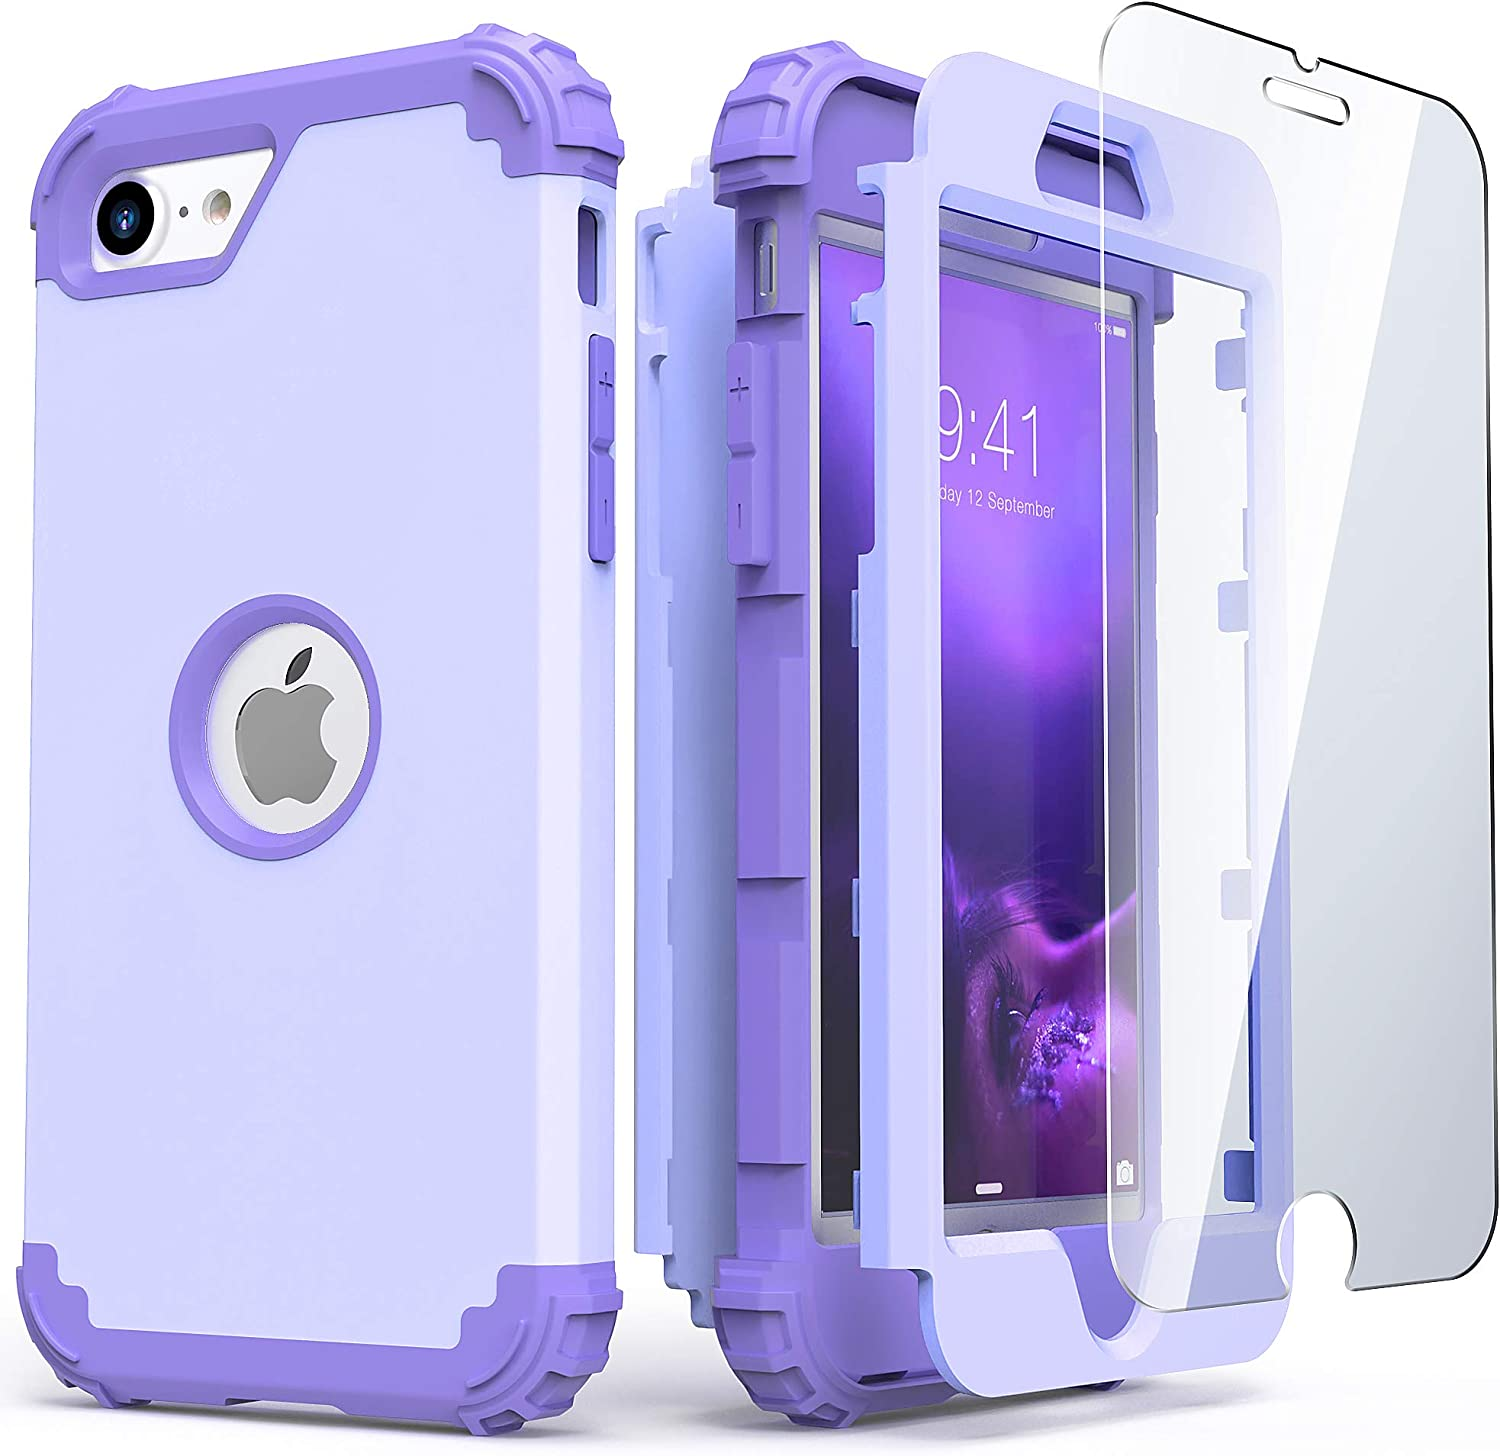 IDweel iPhone SE 2020 Case with Tempered Glass Screen Protector, Hybrid 3 in 1 Shockproof Slim Heavy Duty Hard PC Cover Soft Silicone Rugged Bumper Full Body Case for iPhone SE 2nd Gen (Purple)